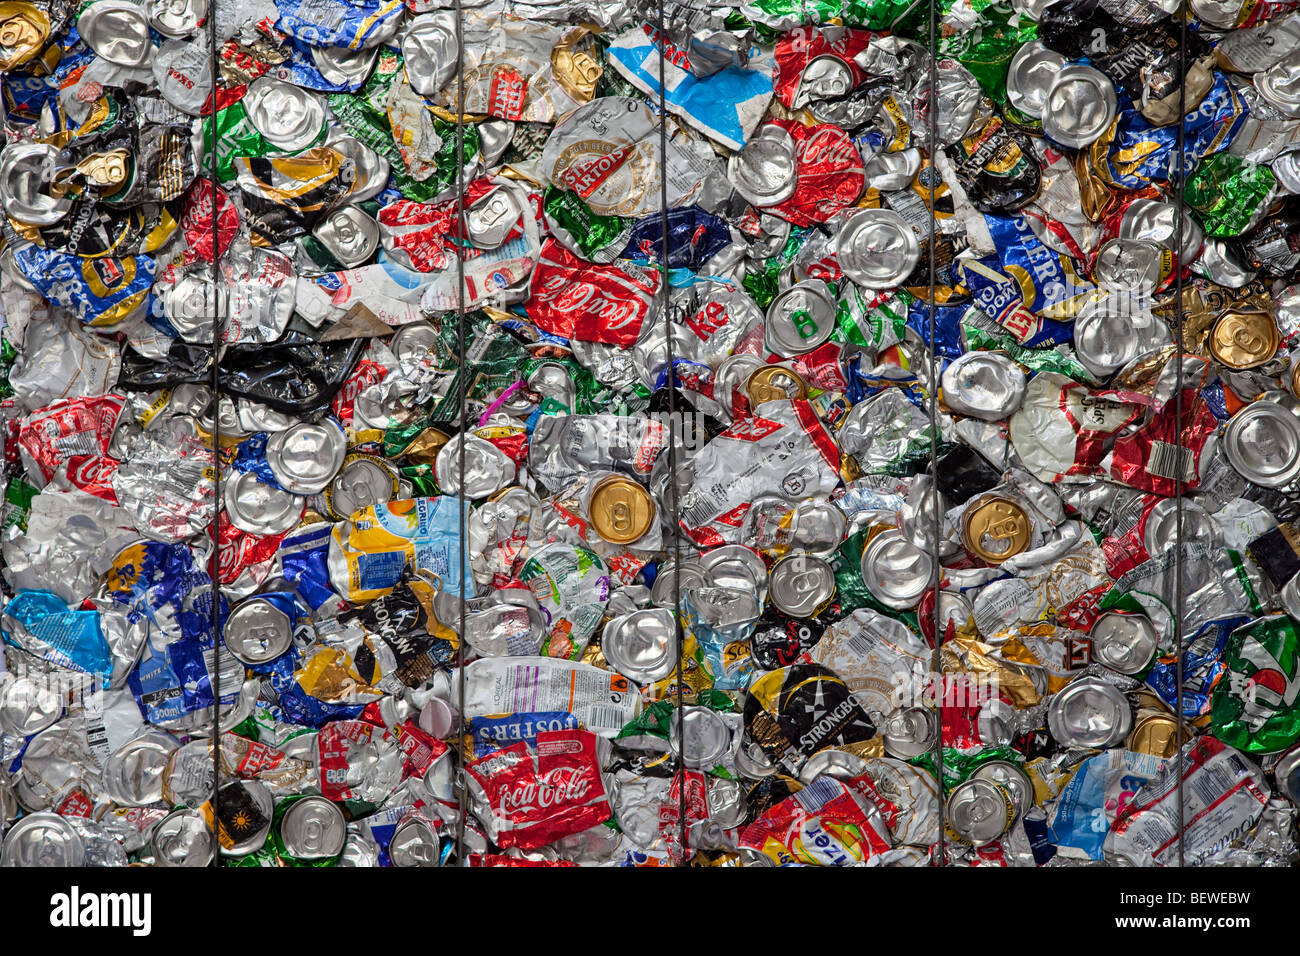 recycled aluminum drinks cans compressed into a block - Stock Image